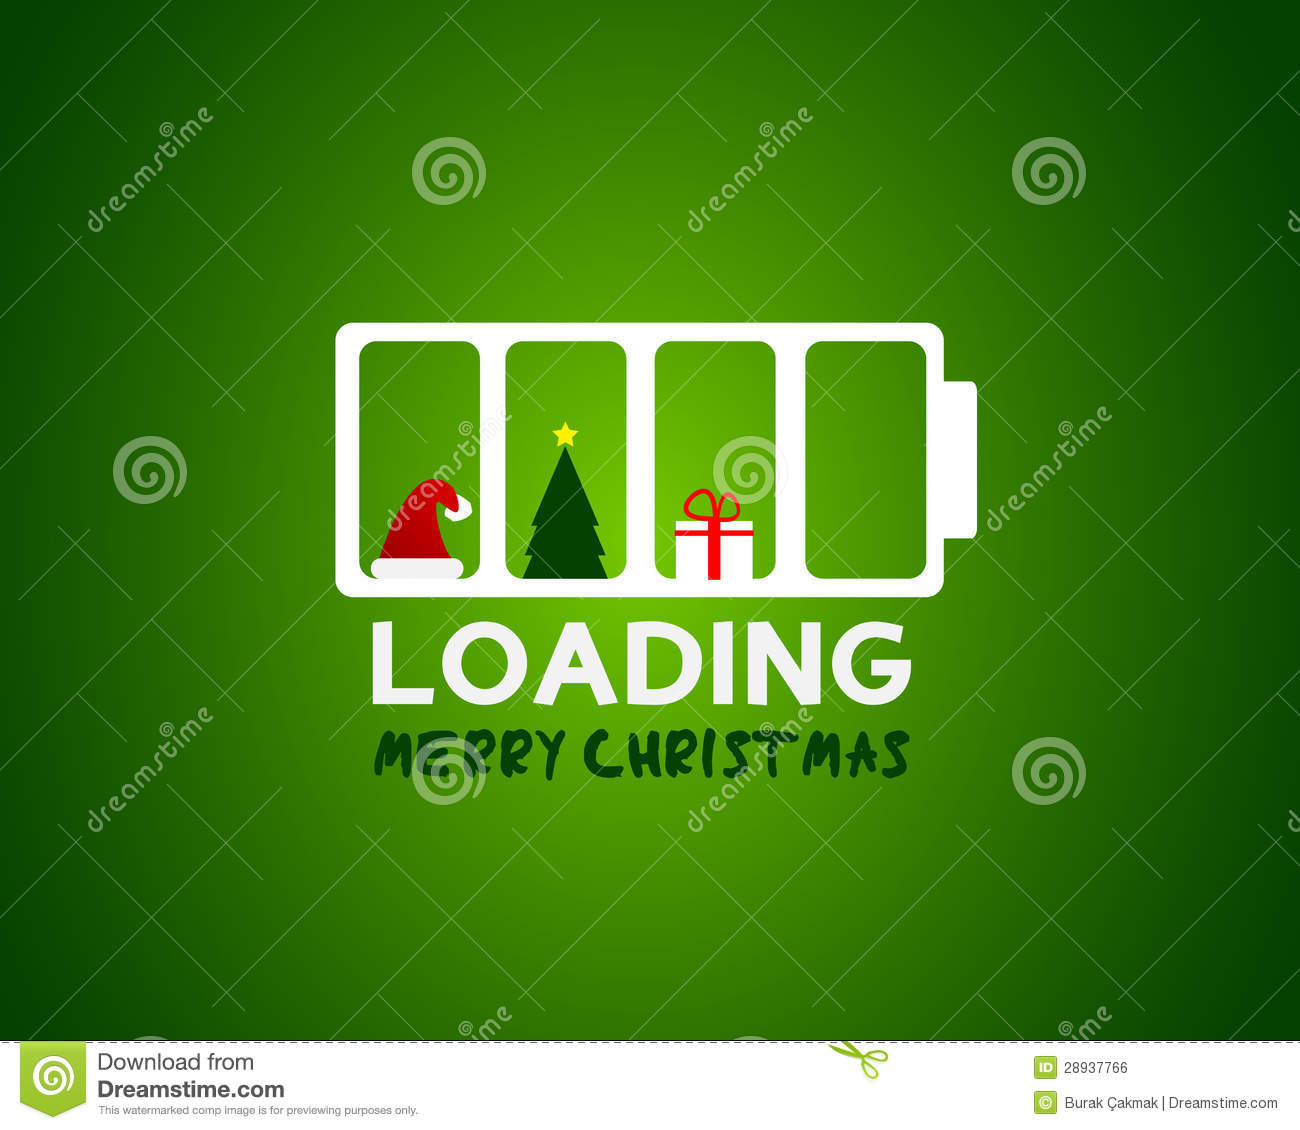 Merry Christmas Web Sale Loading Concept Royalty Free